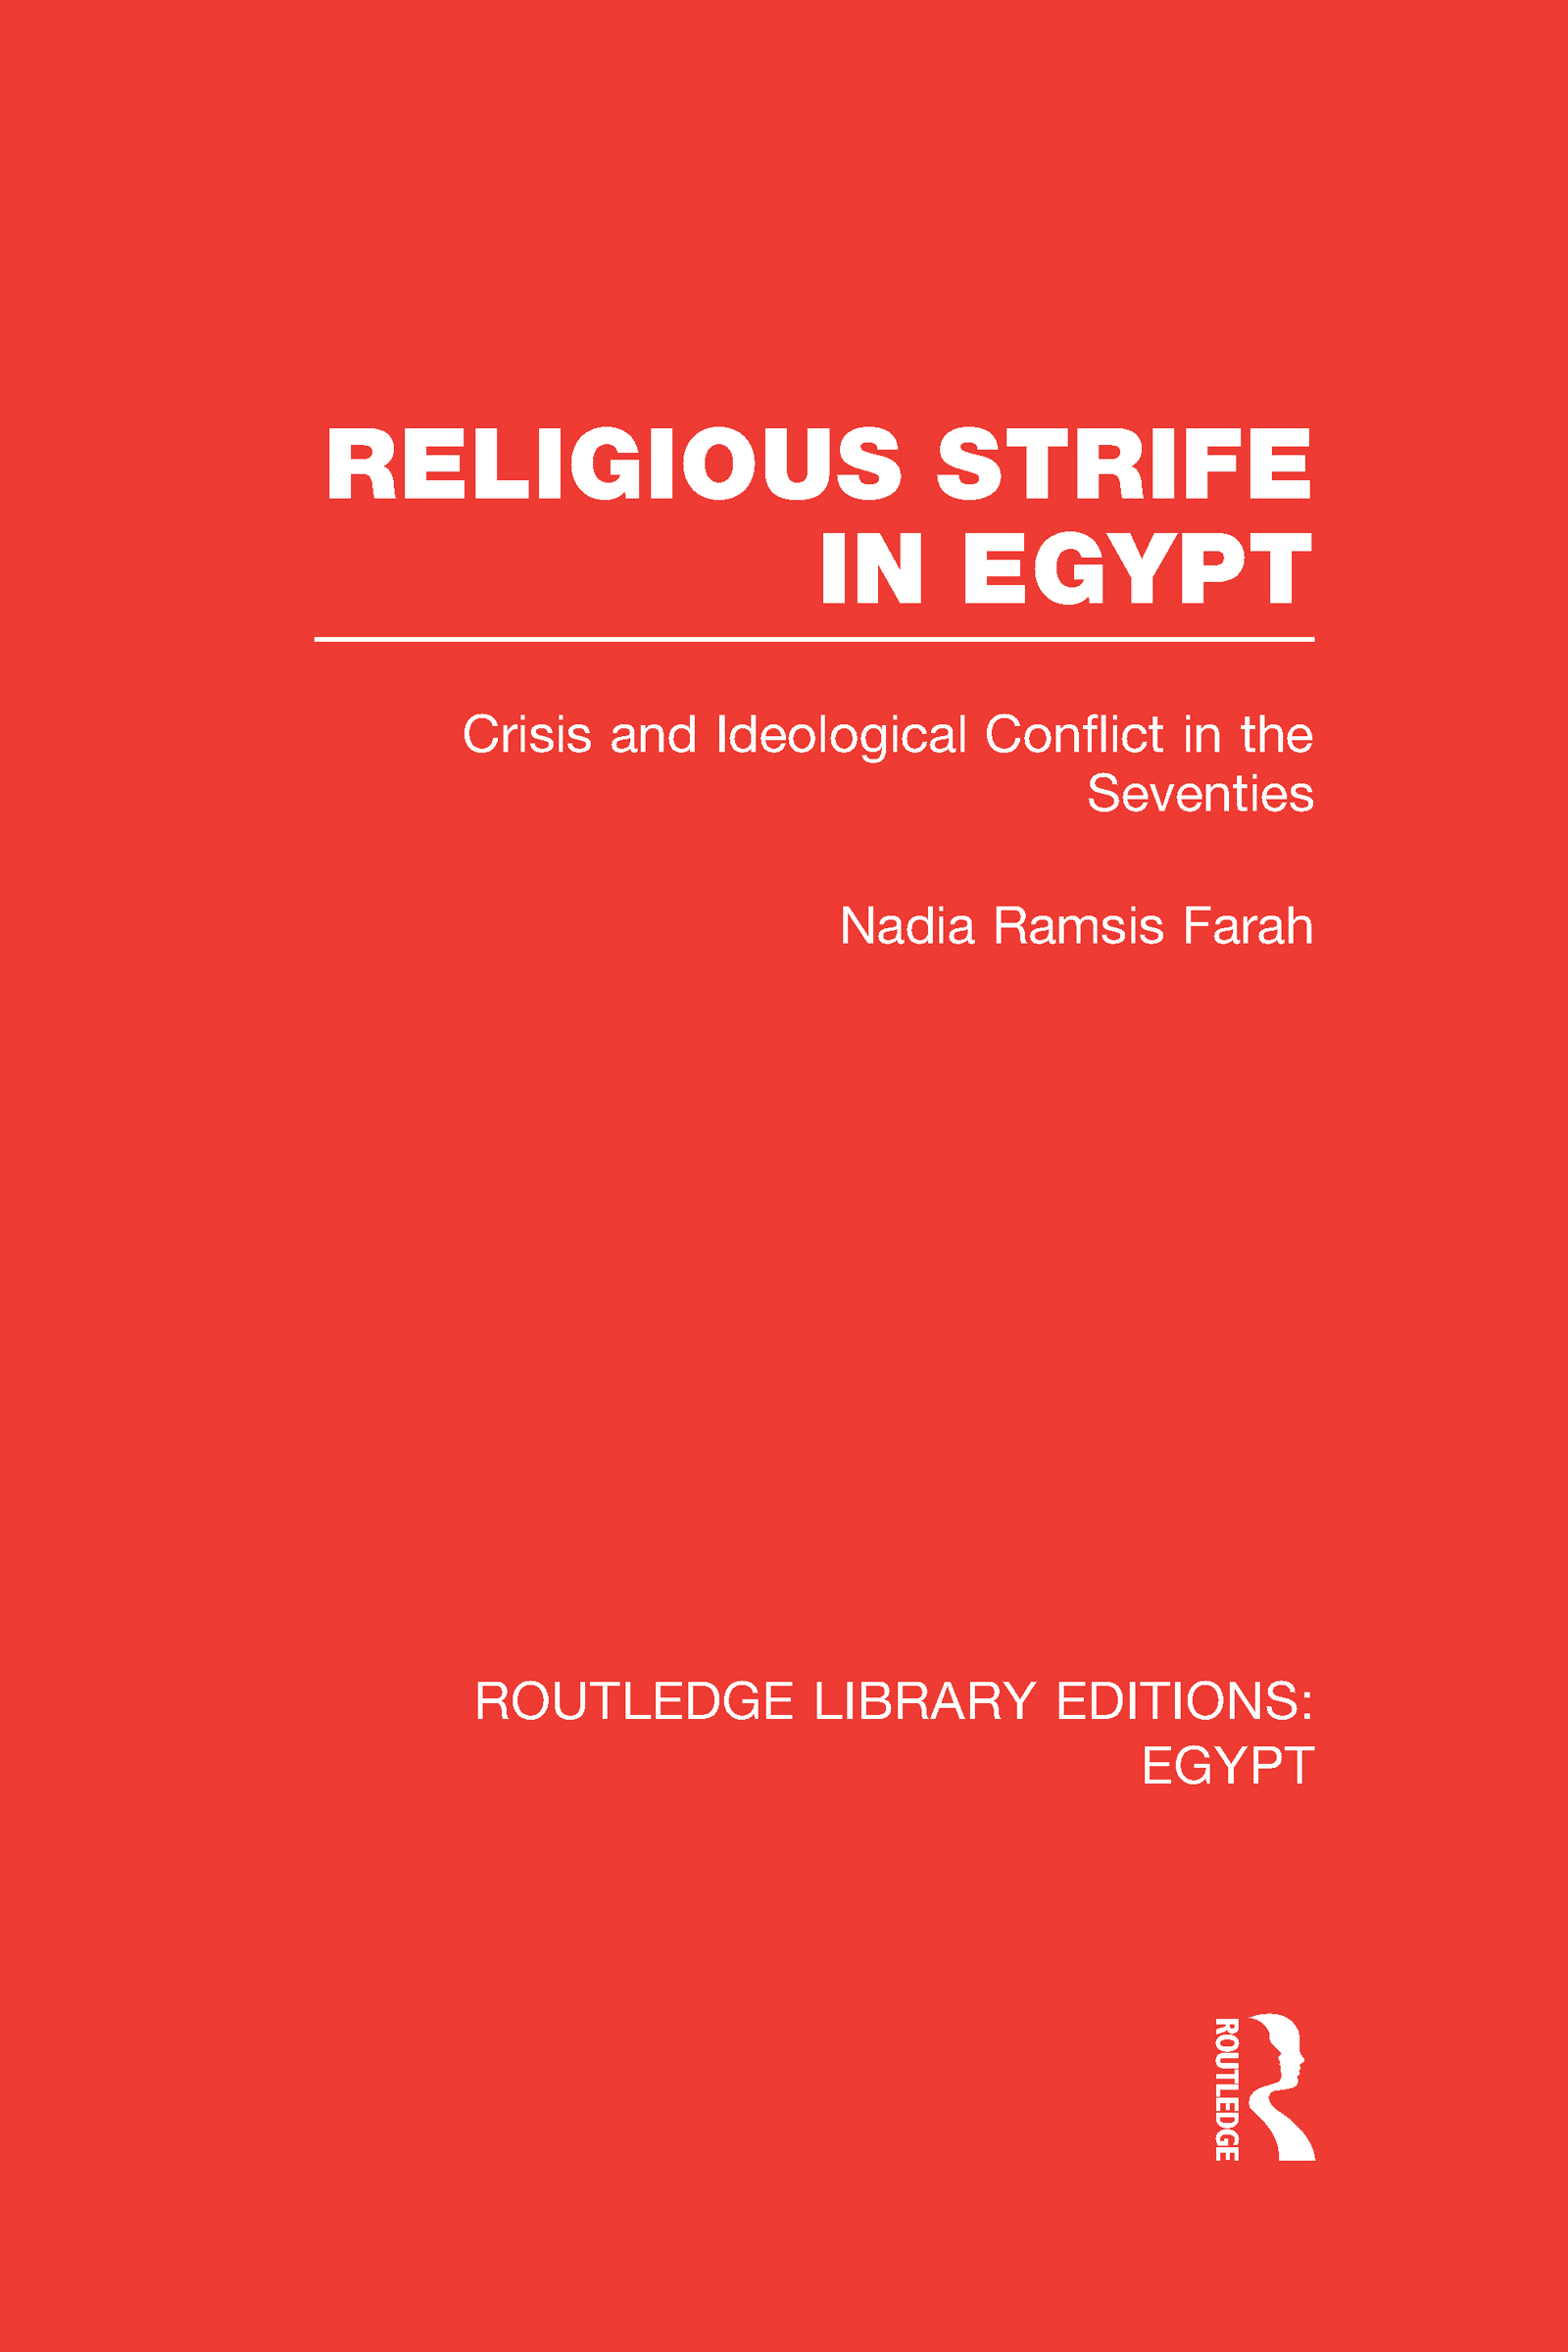 Religious Strife in Egypt (RLE Egypt): Crisis and Ideological Conflict in the Seventies (Hardback) book cover